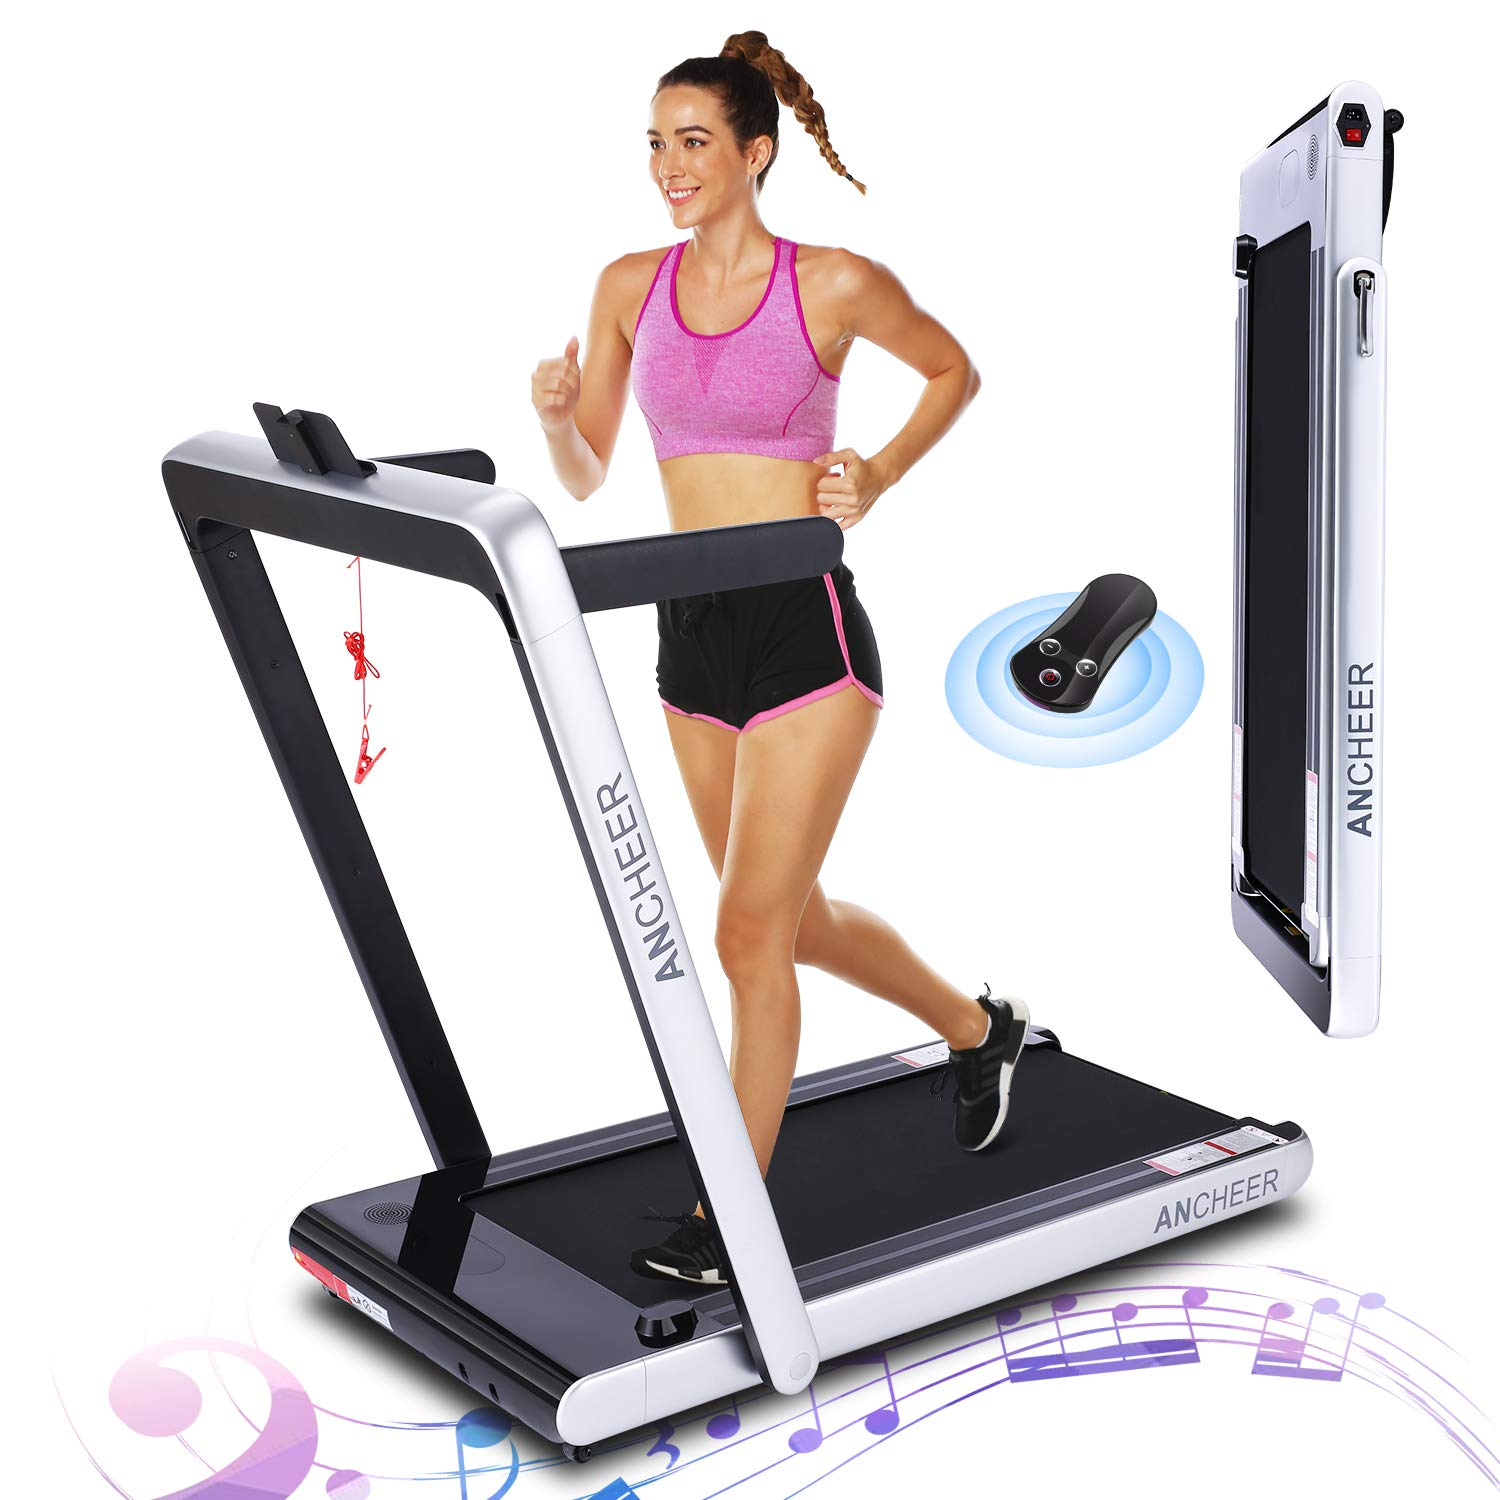 ANCHEER 2 in1 Folding Treadmill, 2.25 HP Smart Walking Running Machine with Bluetooth Audio Speakers, Under Desk Treadmill for Home Gym Cardio Fitness